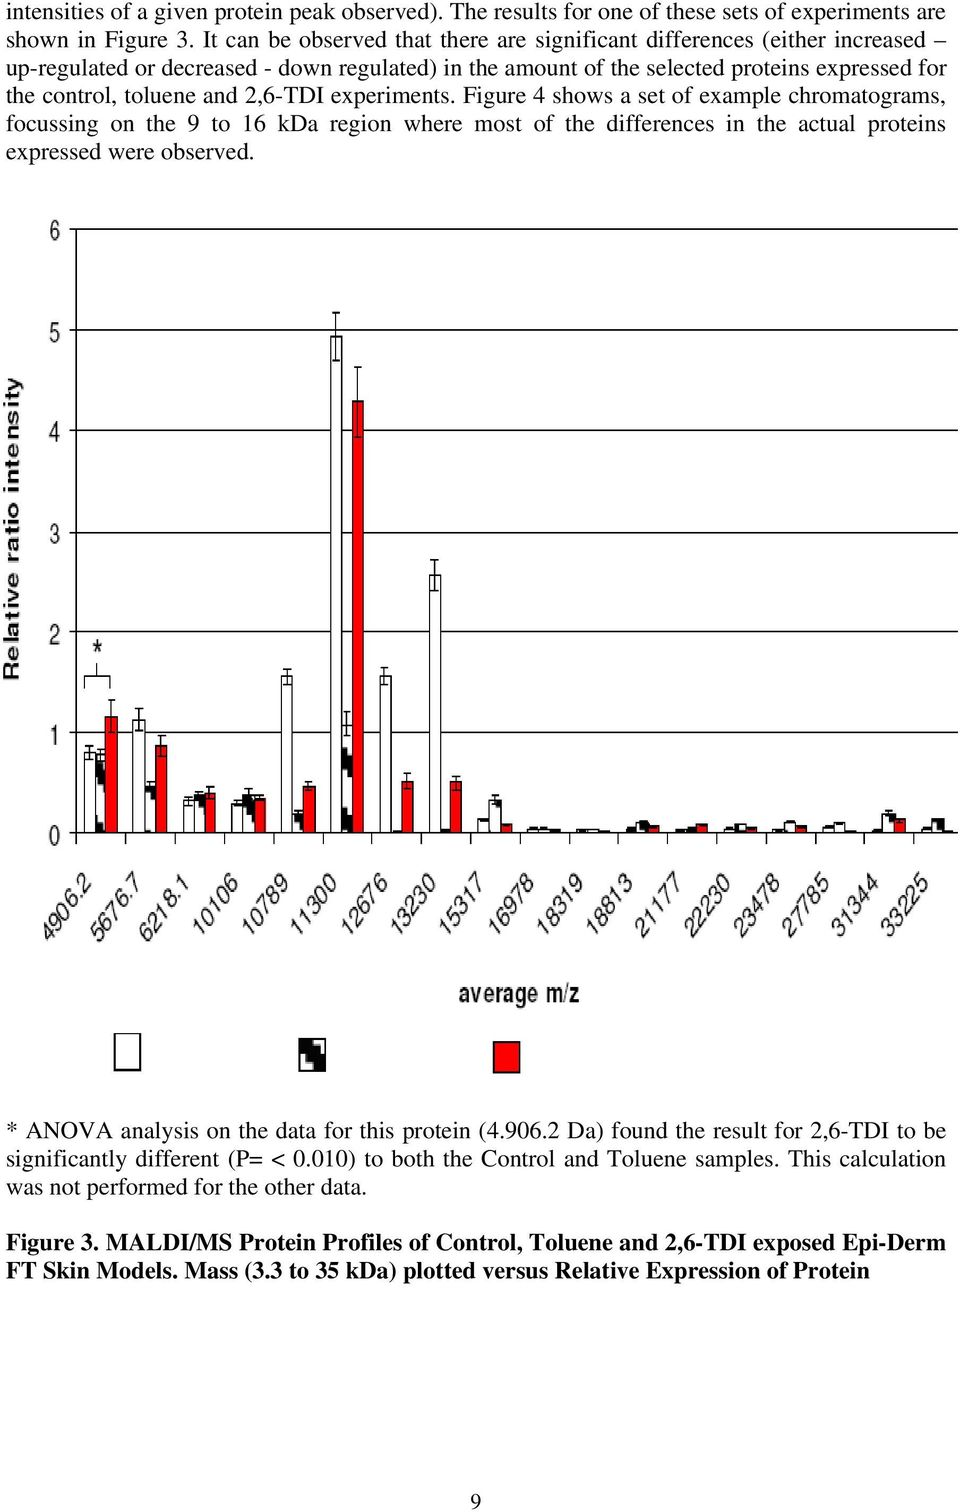 2,6-TDI experiments. Figure 4 shows a set of example chromatograms, focussing on the 9 to 16 kda region where most of the differences in the actual proteins expressed were observed.